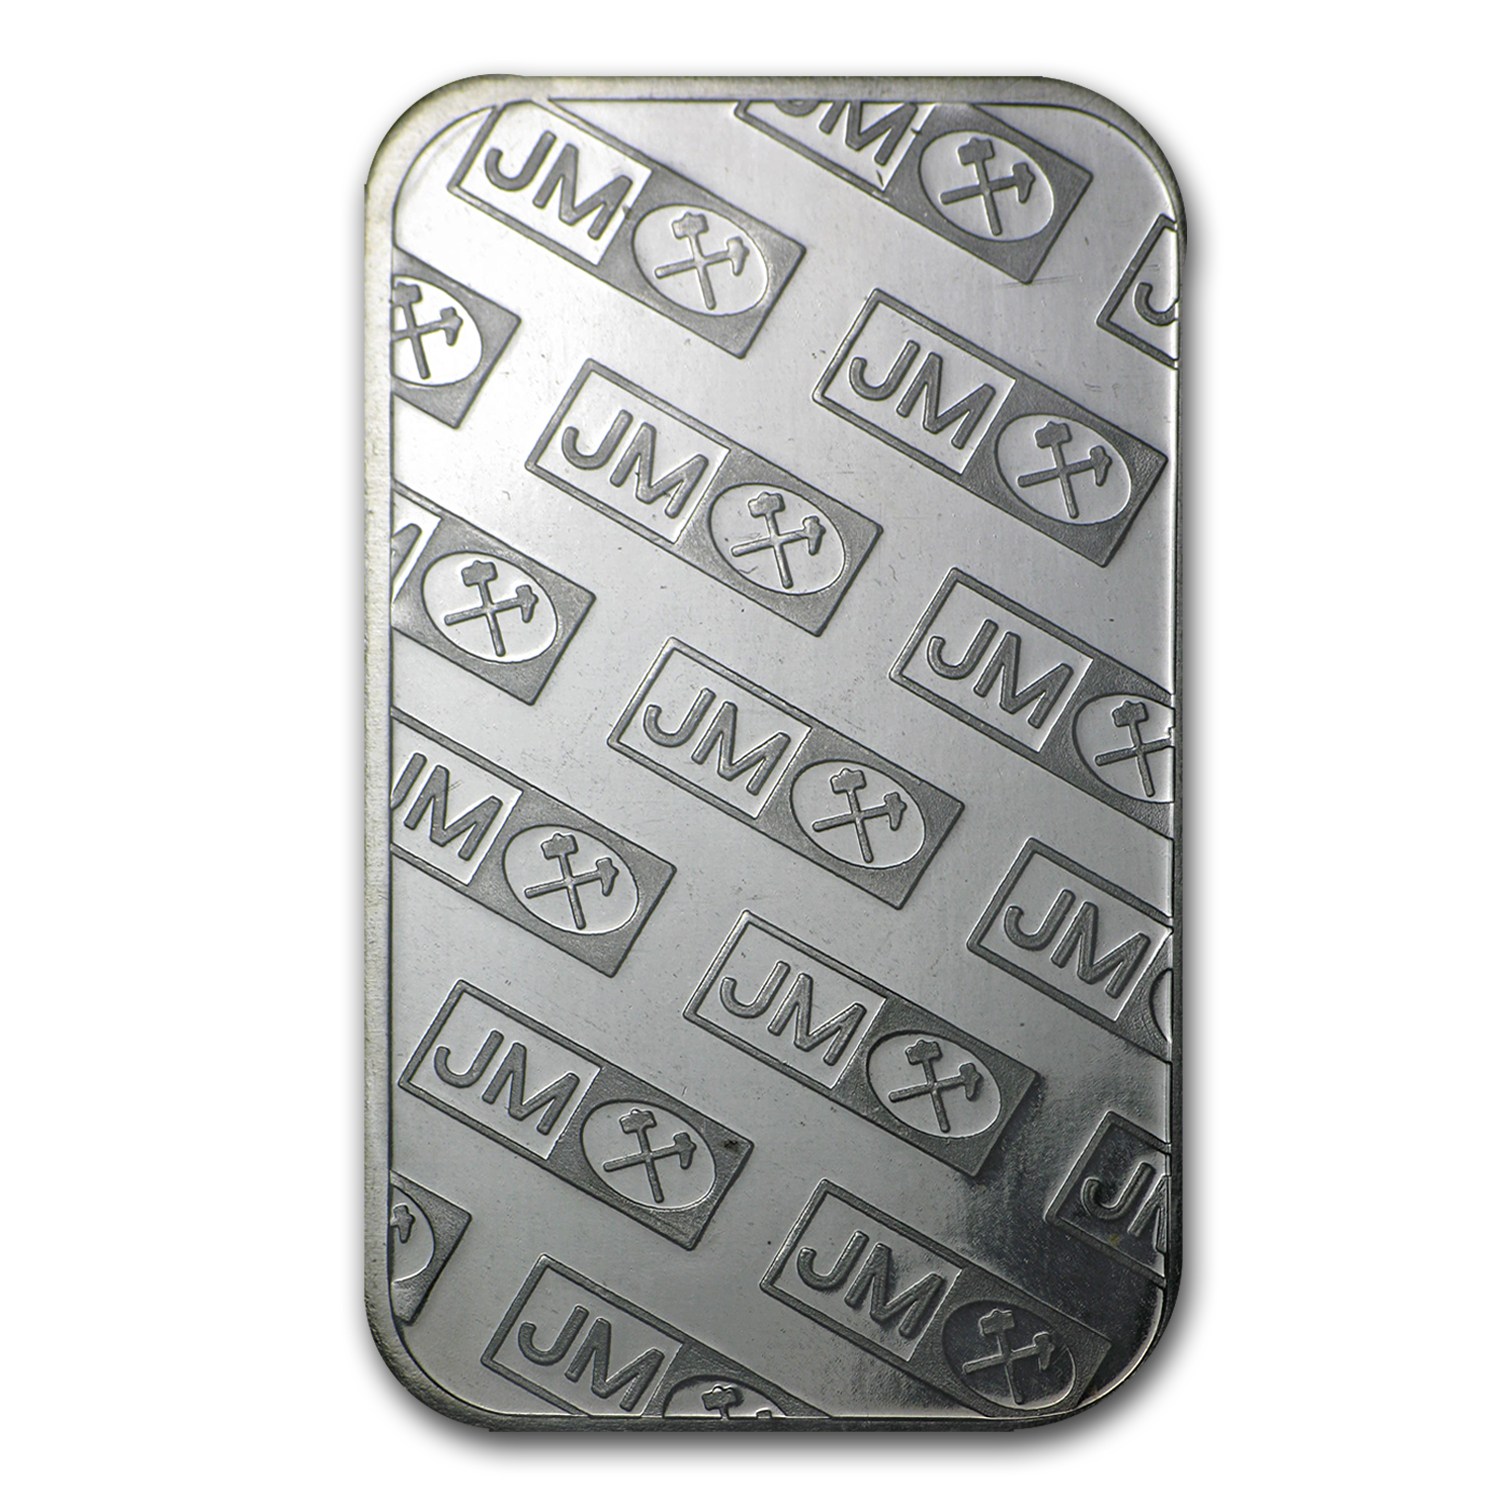 1/2 oz Silver Bars - Johnson Matthey